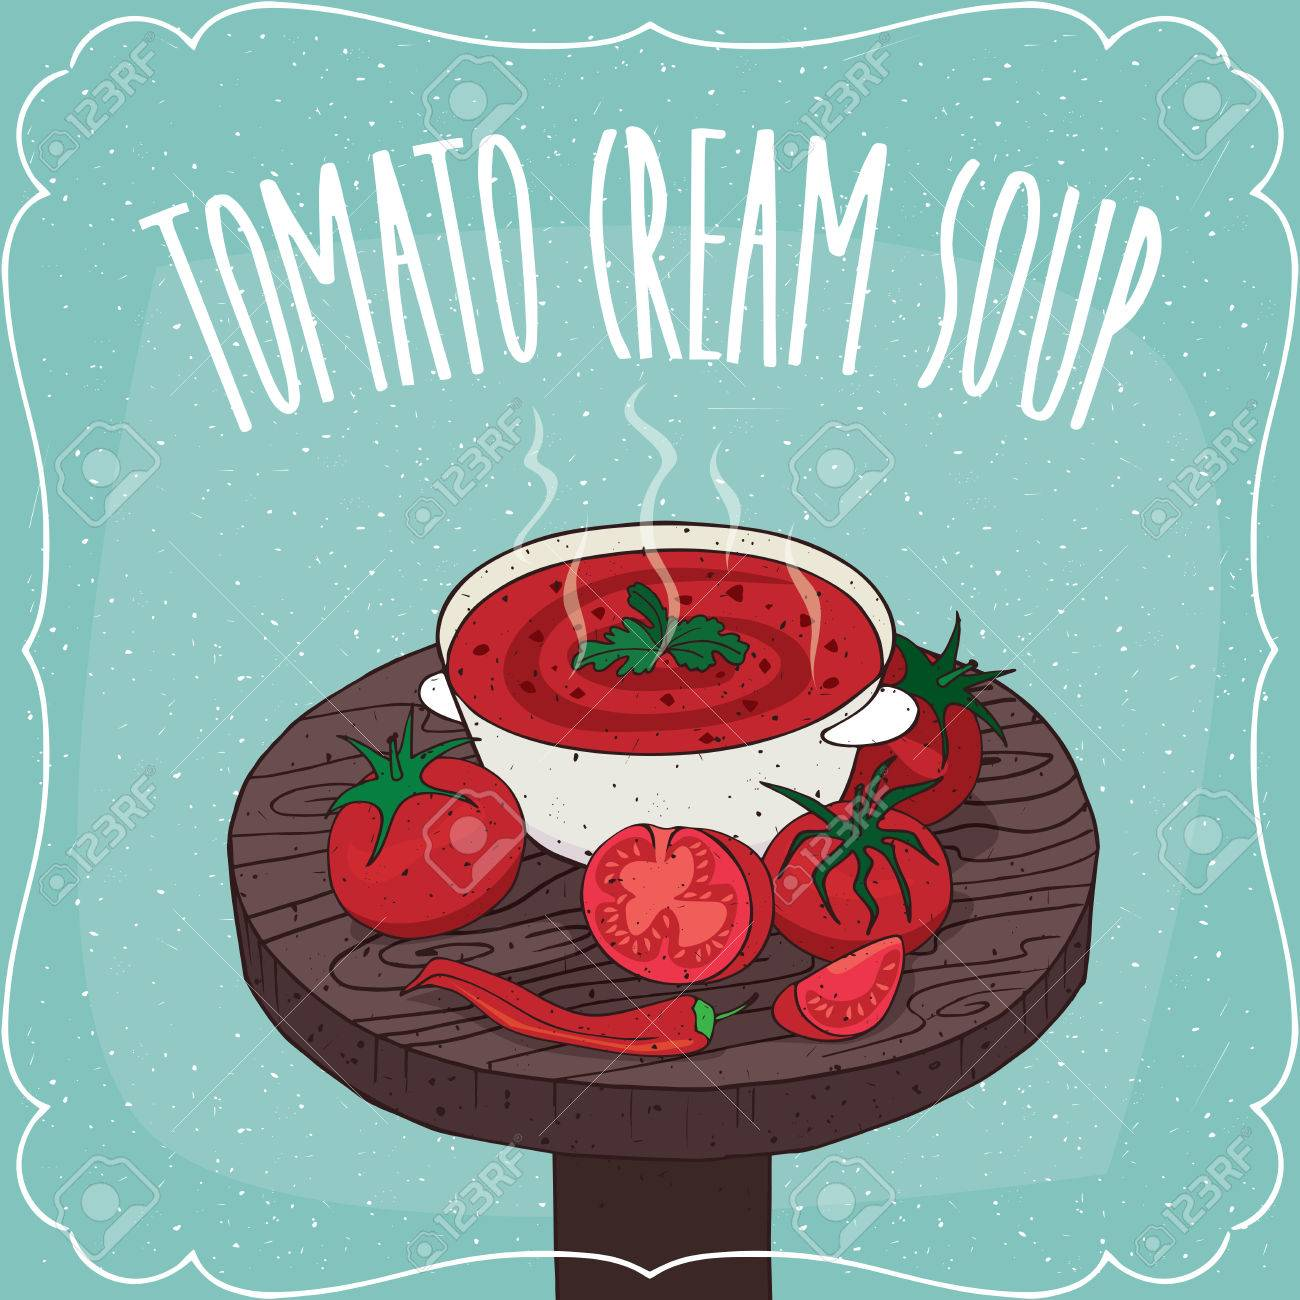 Deep plate with hot tomato cream soup on round wooden table with fresh tomatoes and chili  sc 1 st  123RF.com & Deep Plate With Hot Tomato Cream Soup On Round Wooden Table With ...